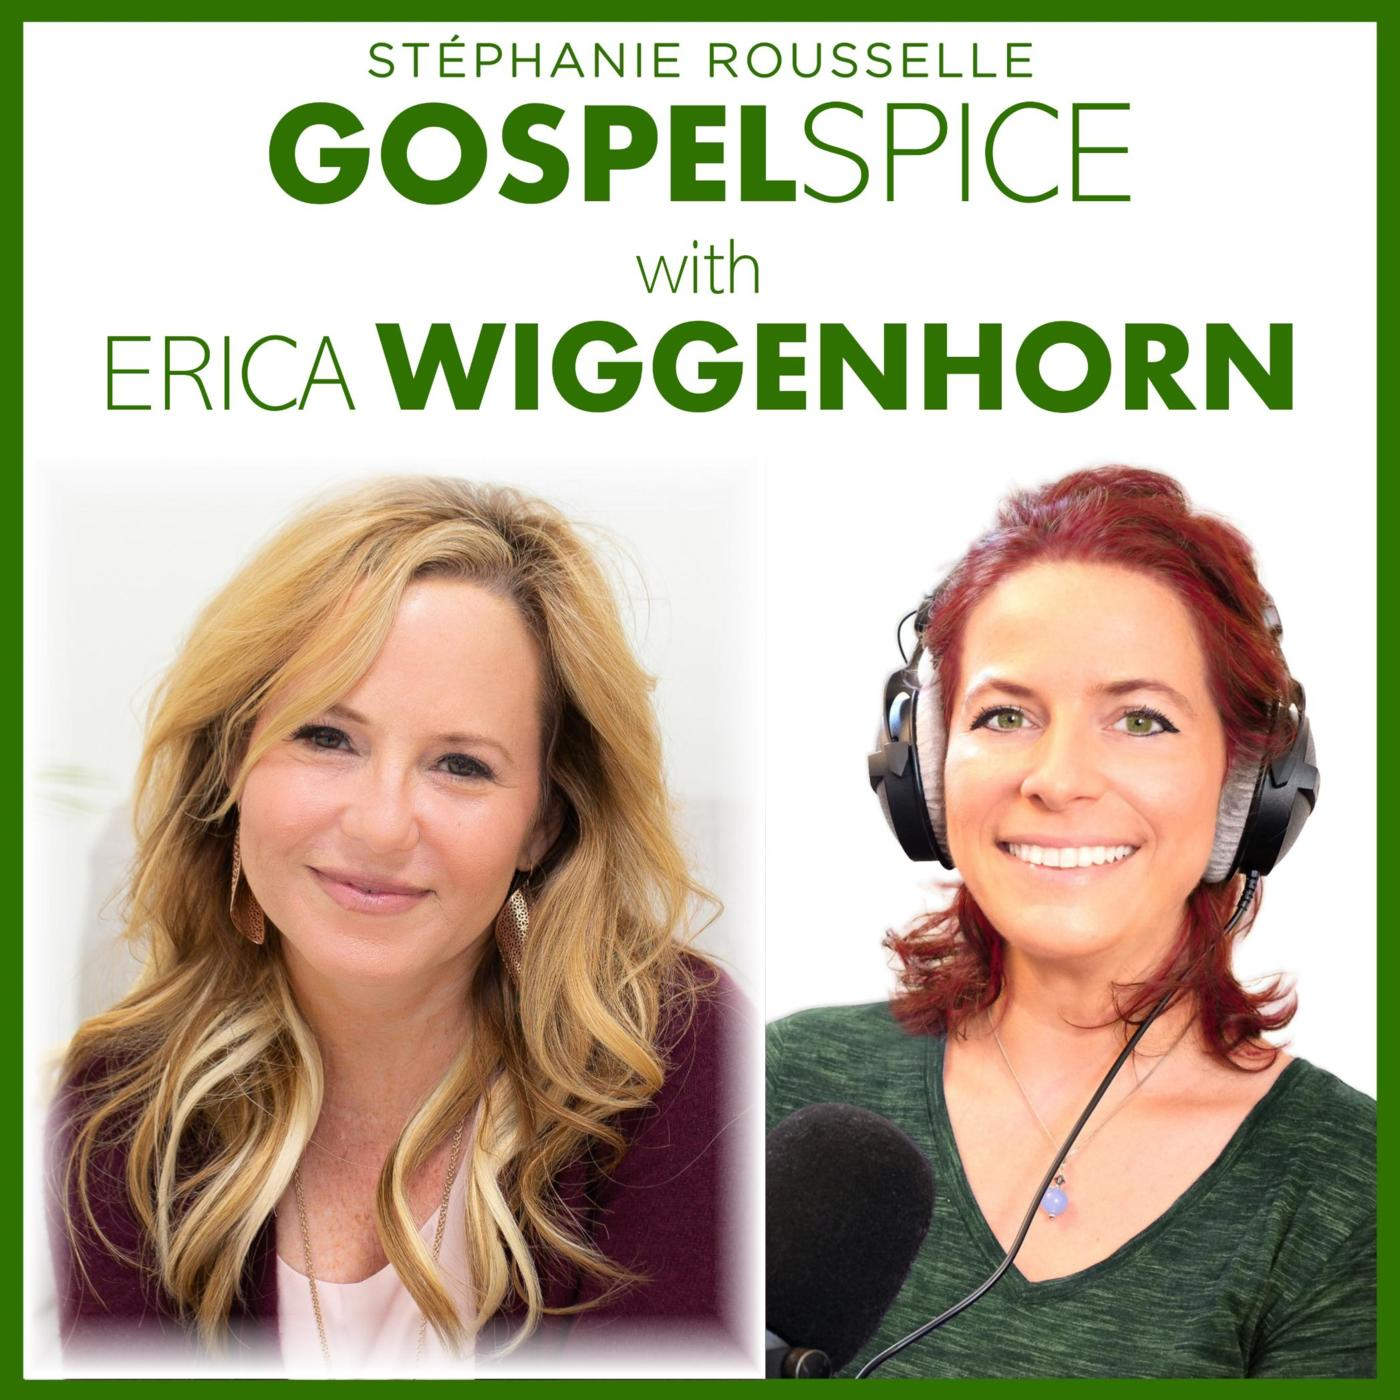 Can God TRULY be enough? with Erica Wiggenhorn